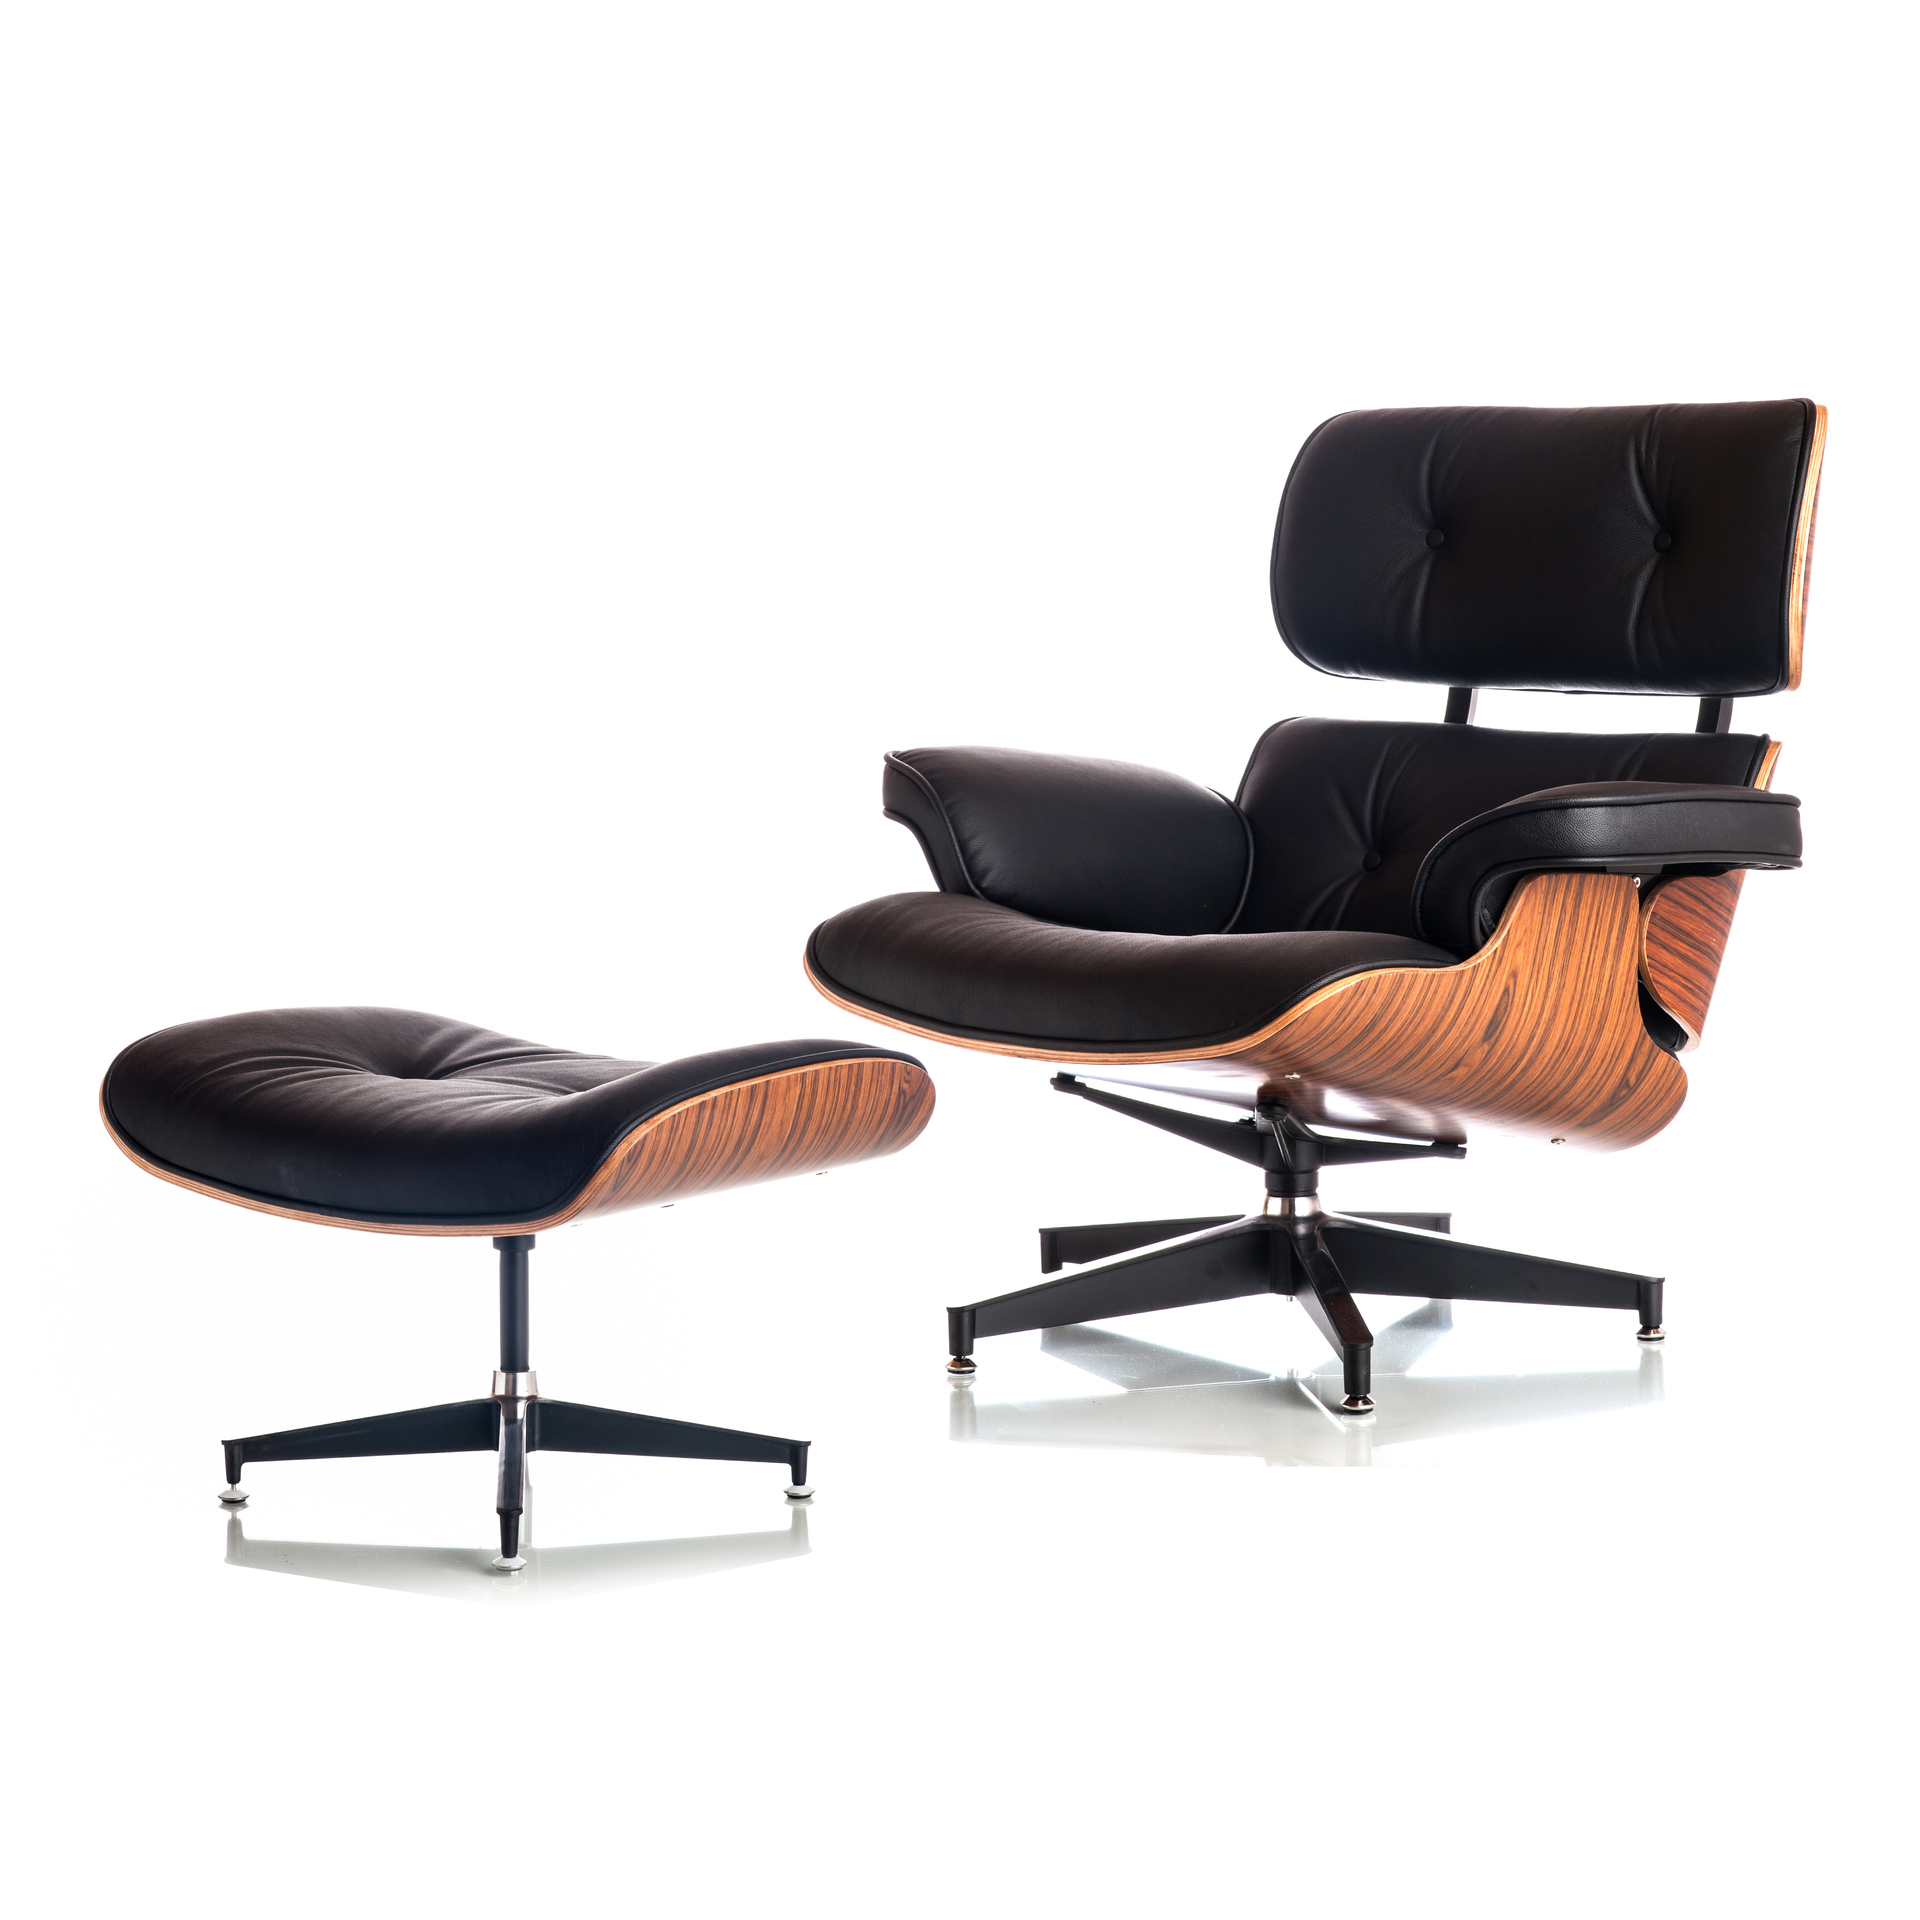 Chair and Ottoman Eames Style